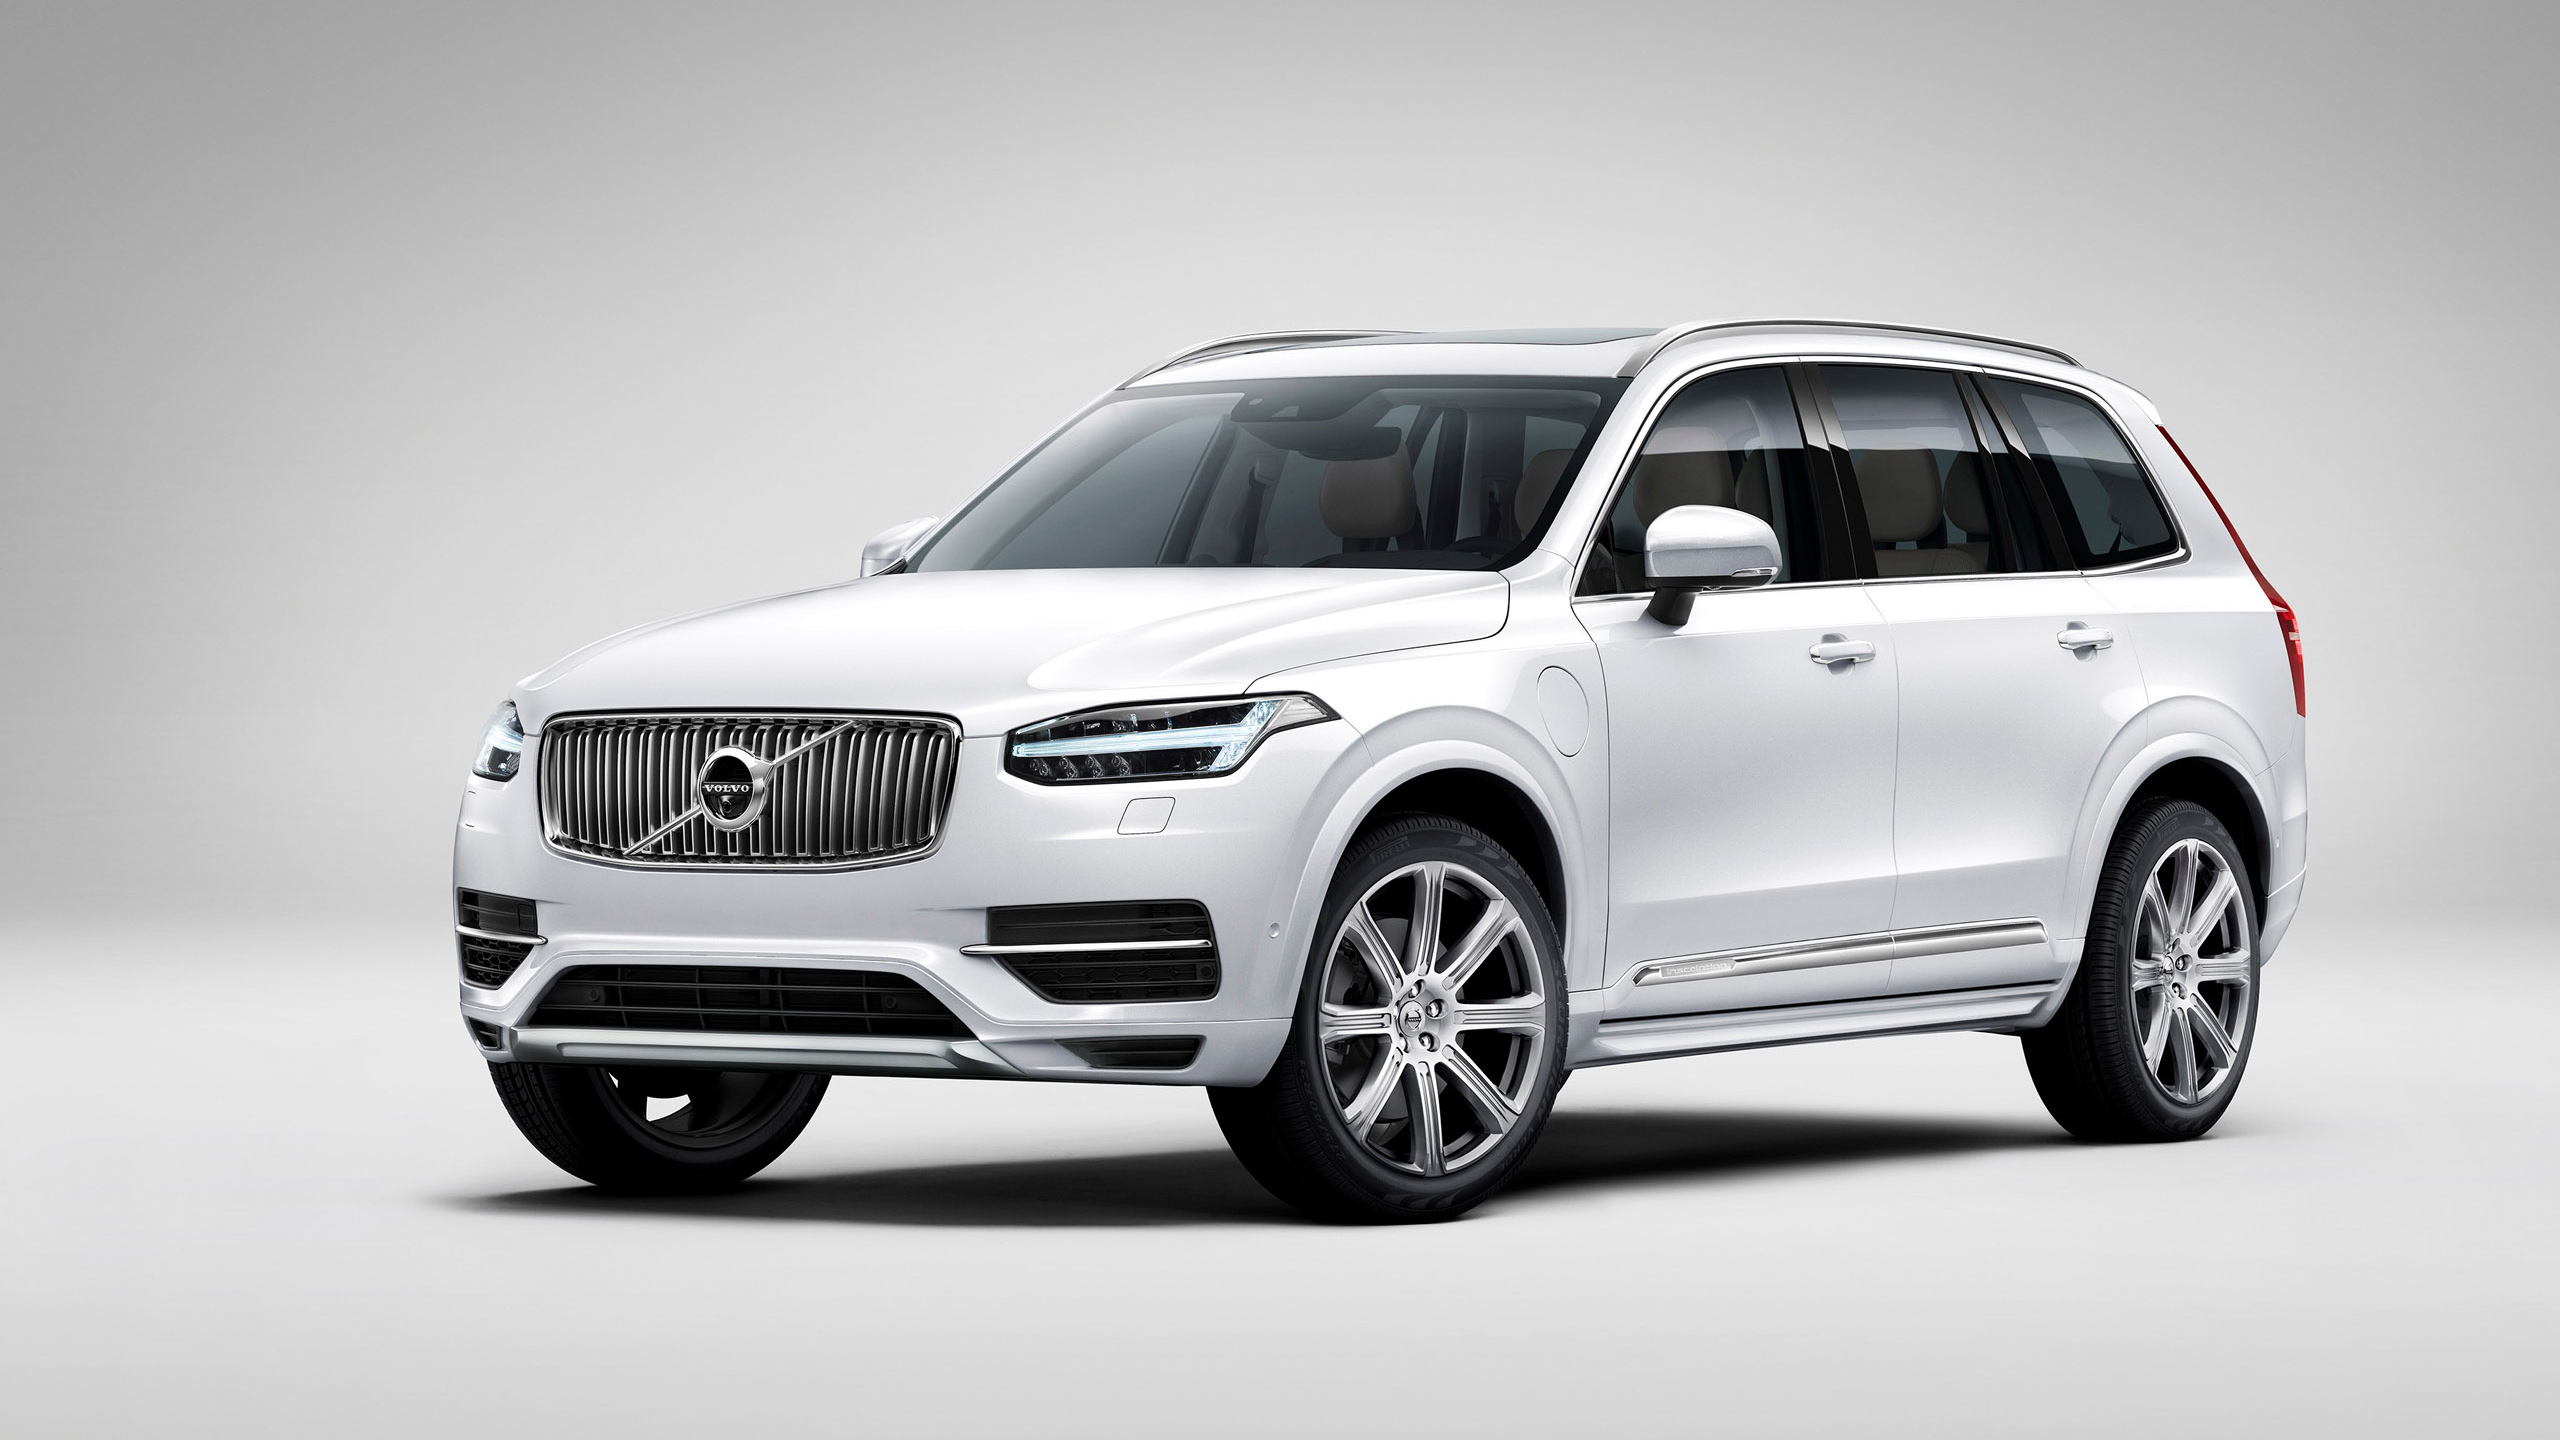 volvo xc90 2015 wallpaper hd car wallpapers id 4802. Black Bedroom Furniture Sets. Home Design Ideas